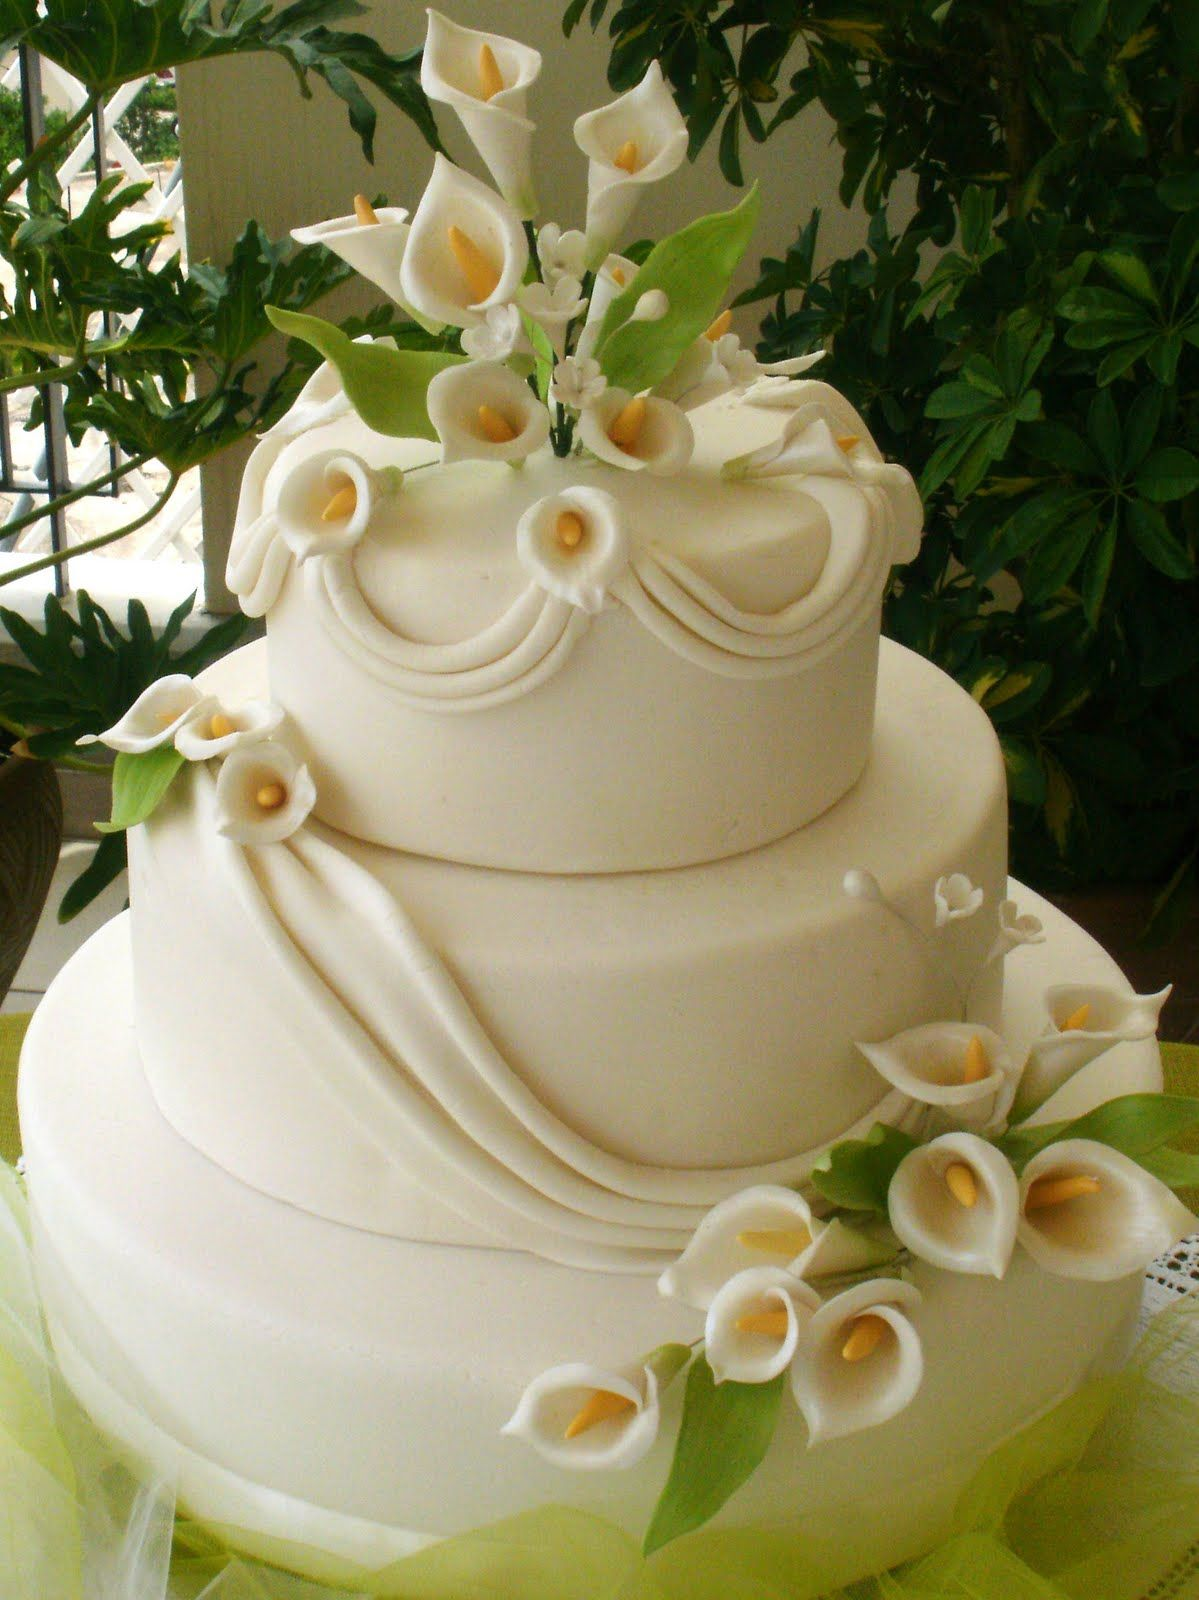 Calla Lily Cake Weddings Get Married Cakes Fondant Pinterest